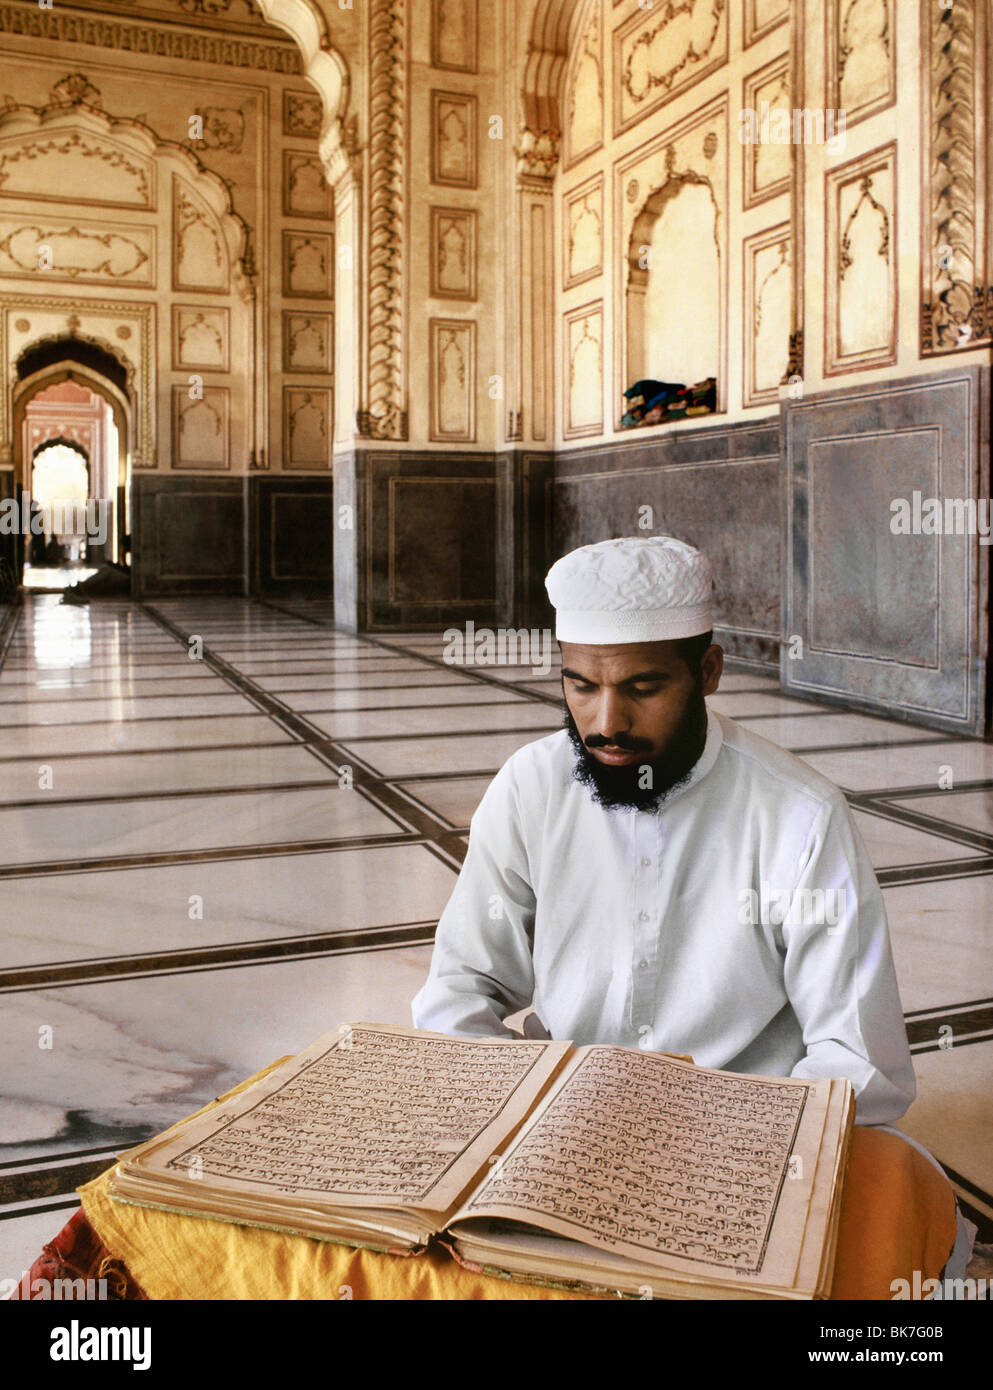 Man reading the Koran, Lahore, Pakistan, Asia - Stock Image